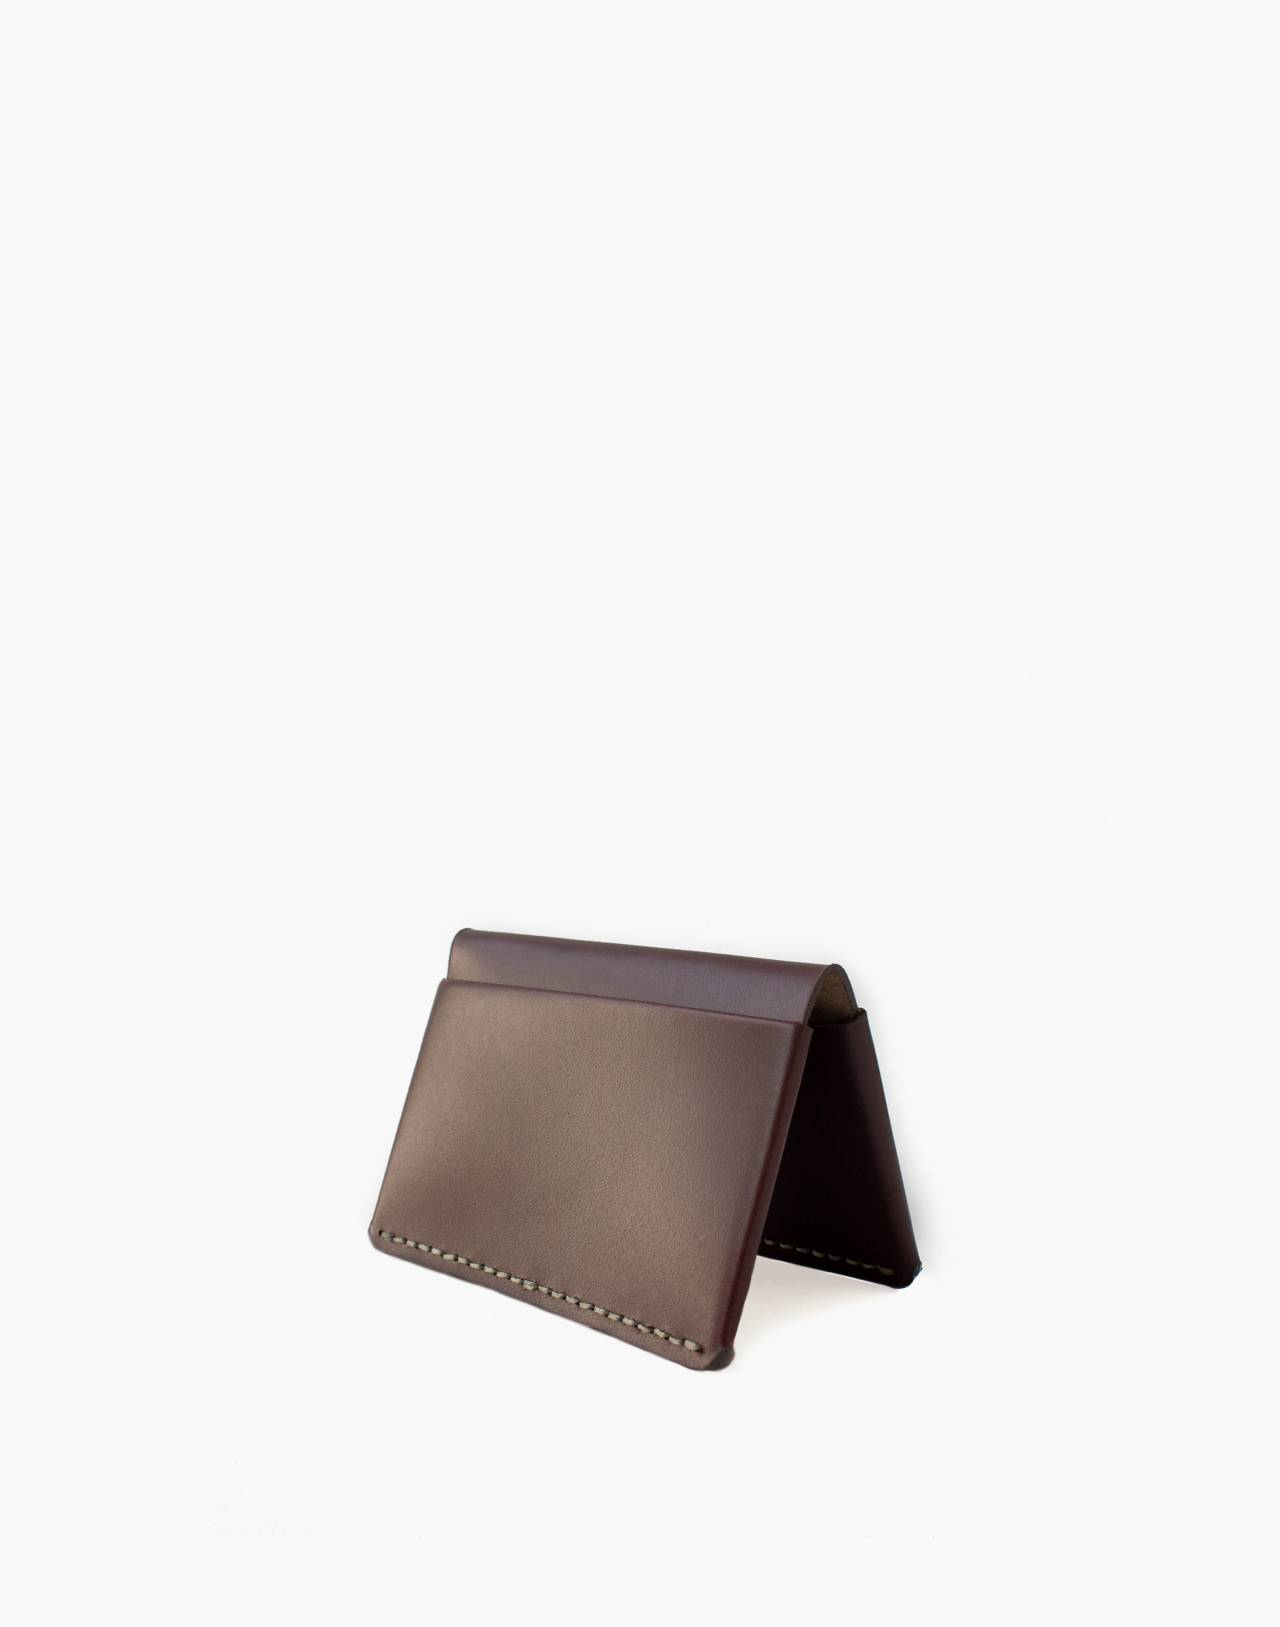 MAKR Leather Horizon Four Wallet in red image 1